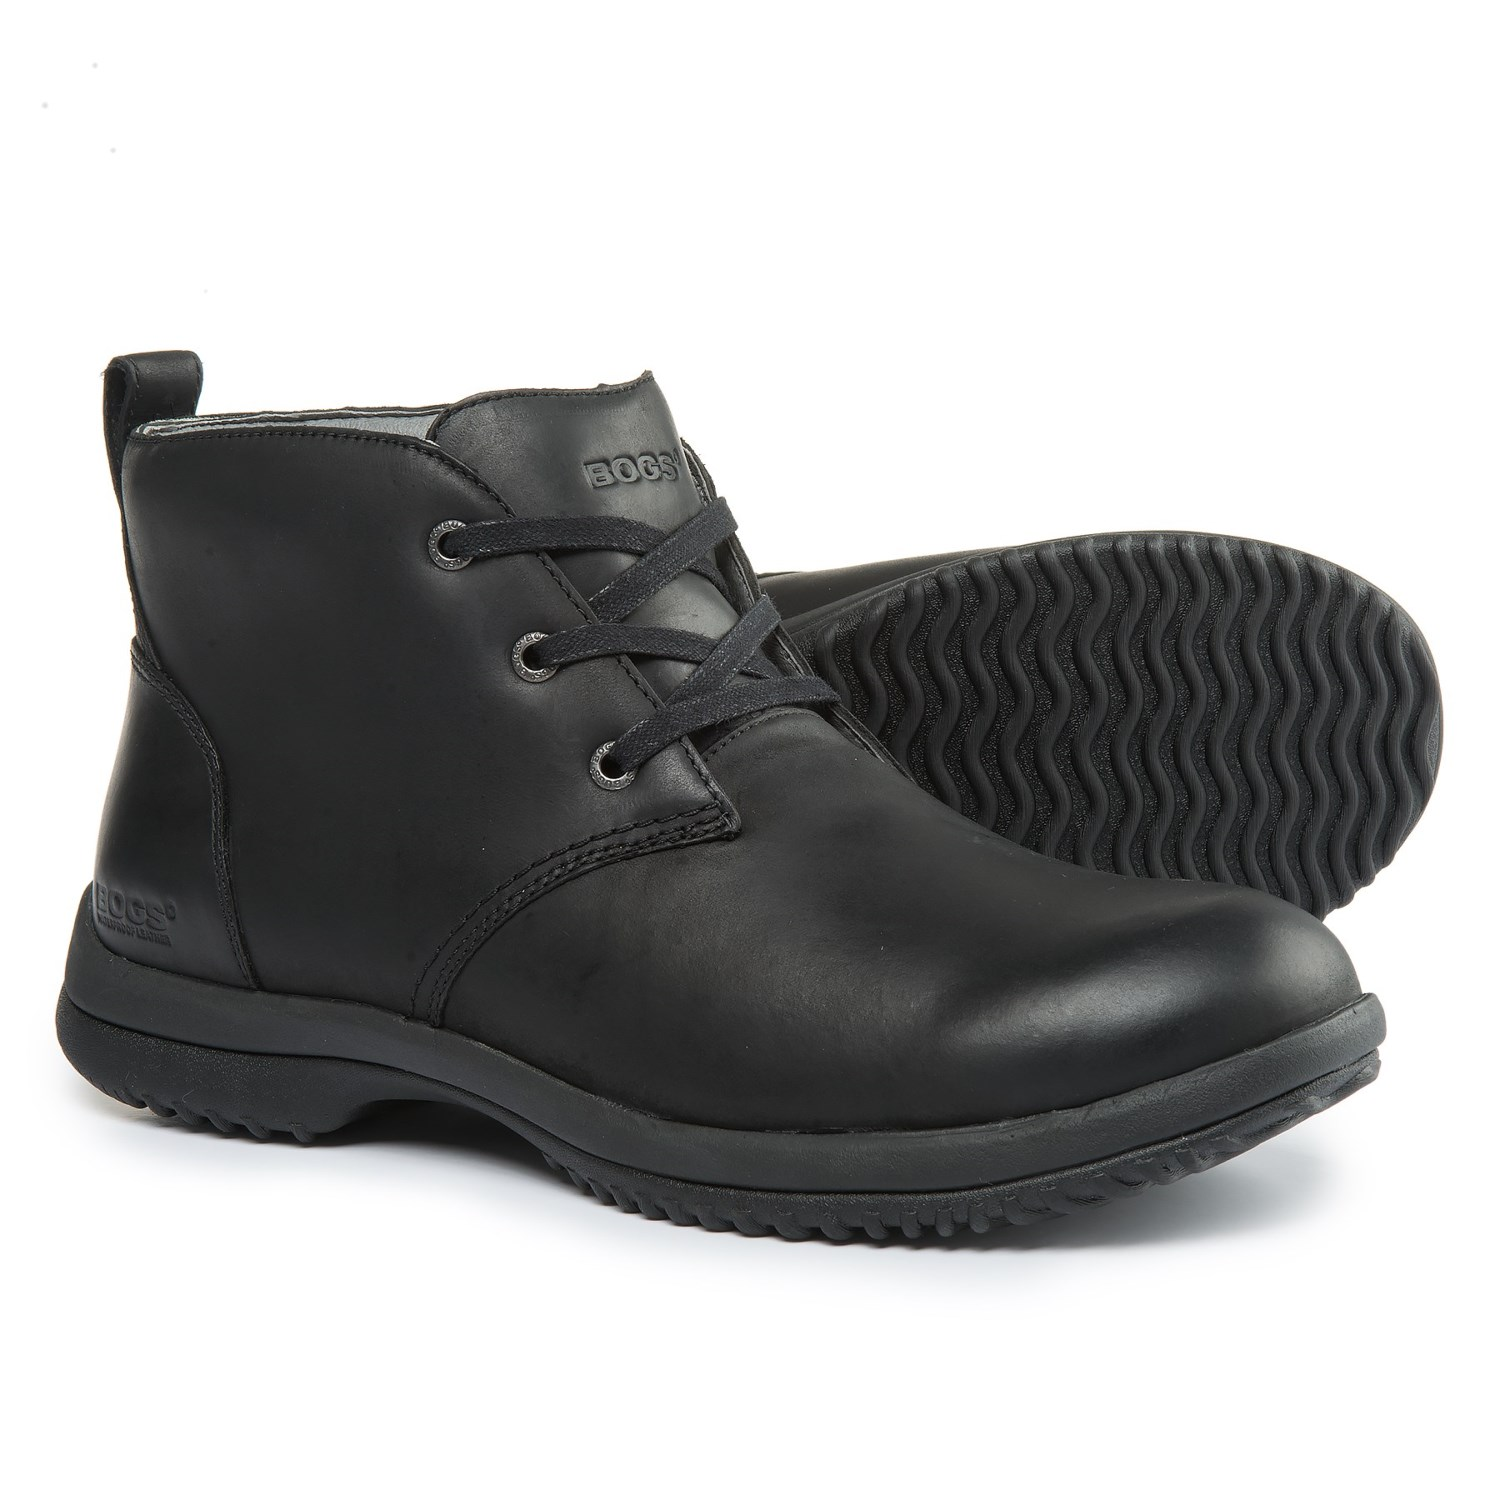 Bogs Footwear Cruz Leather Chukka Boots  For Men